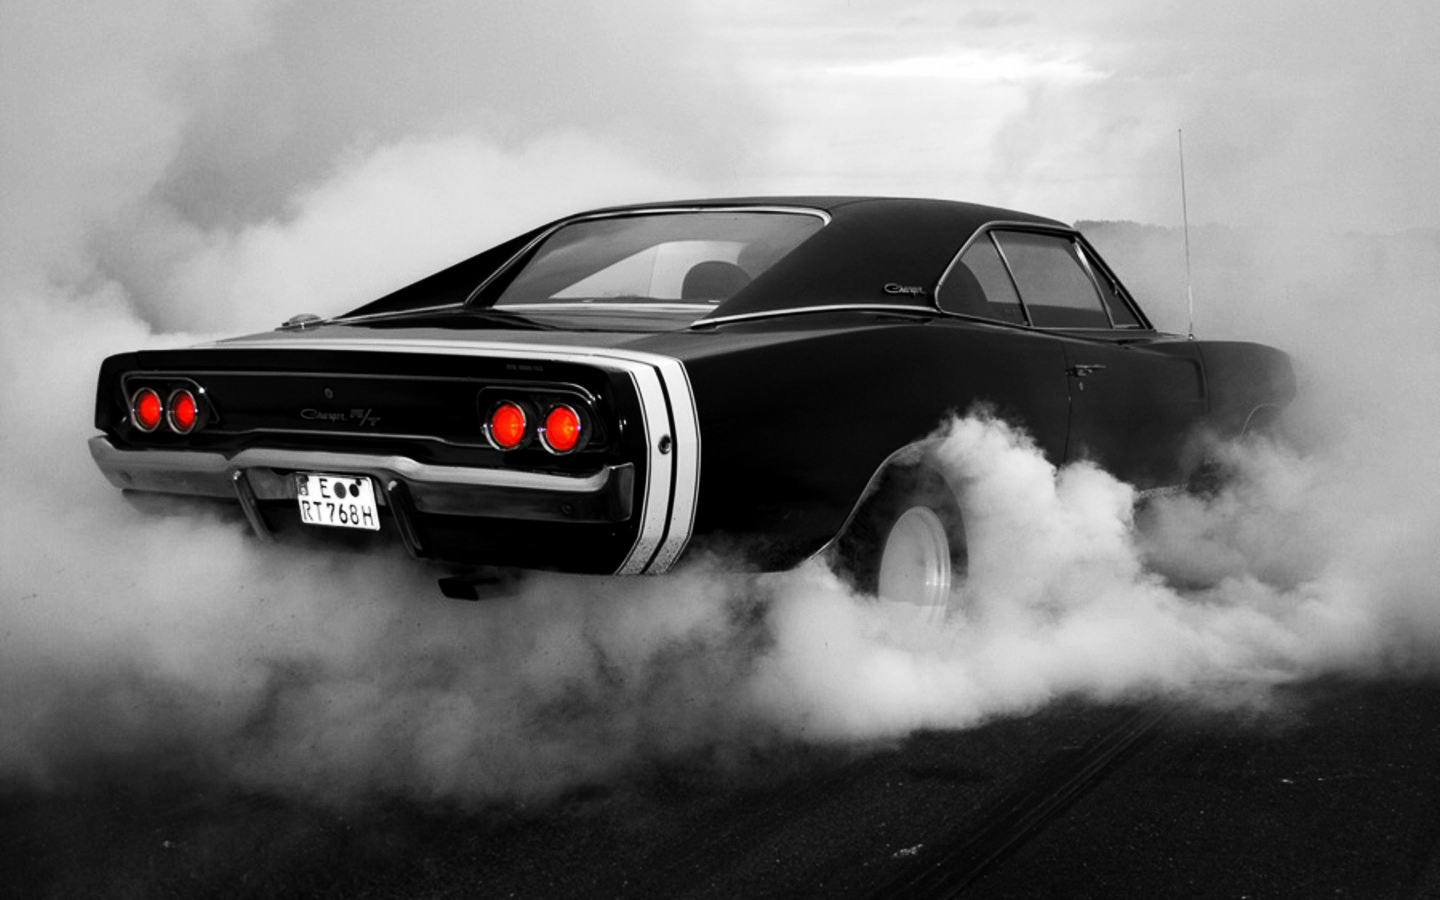 100% Quality HD Dodge Wallpapers, High Quality, B.SCB Wallpapers